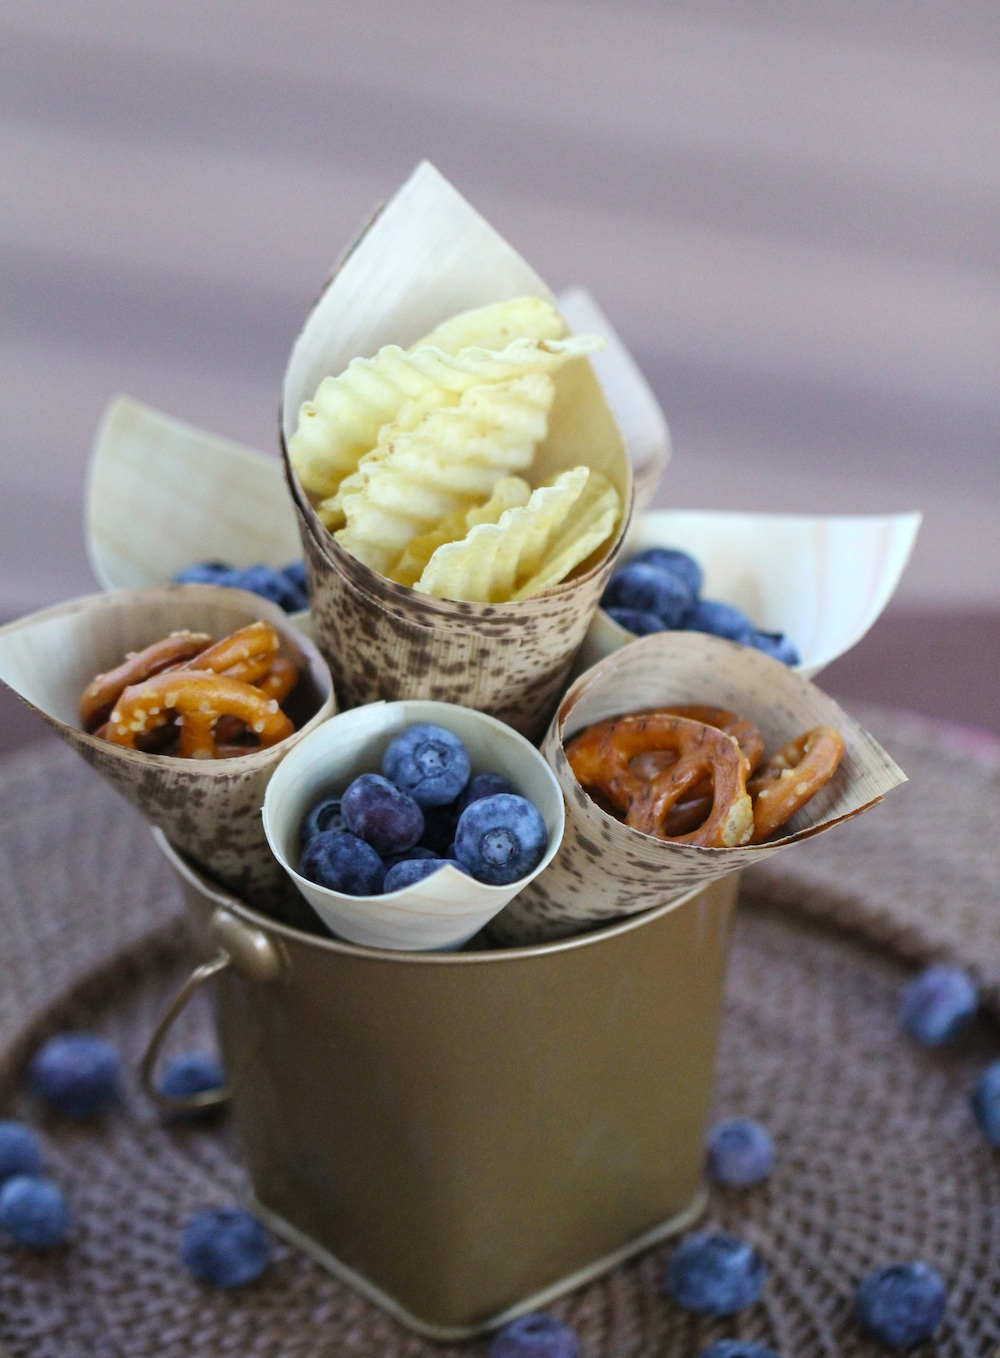 stylish food presentation ideas for parties of all kind